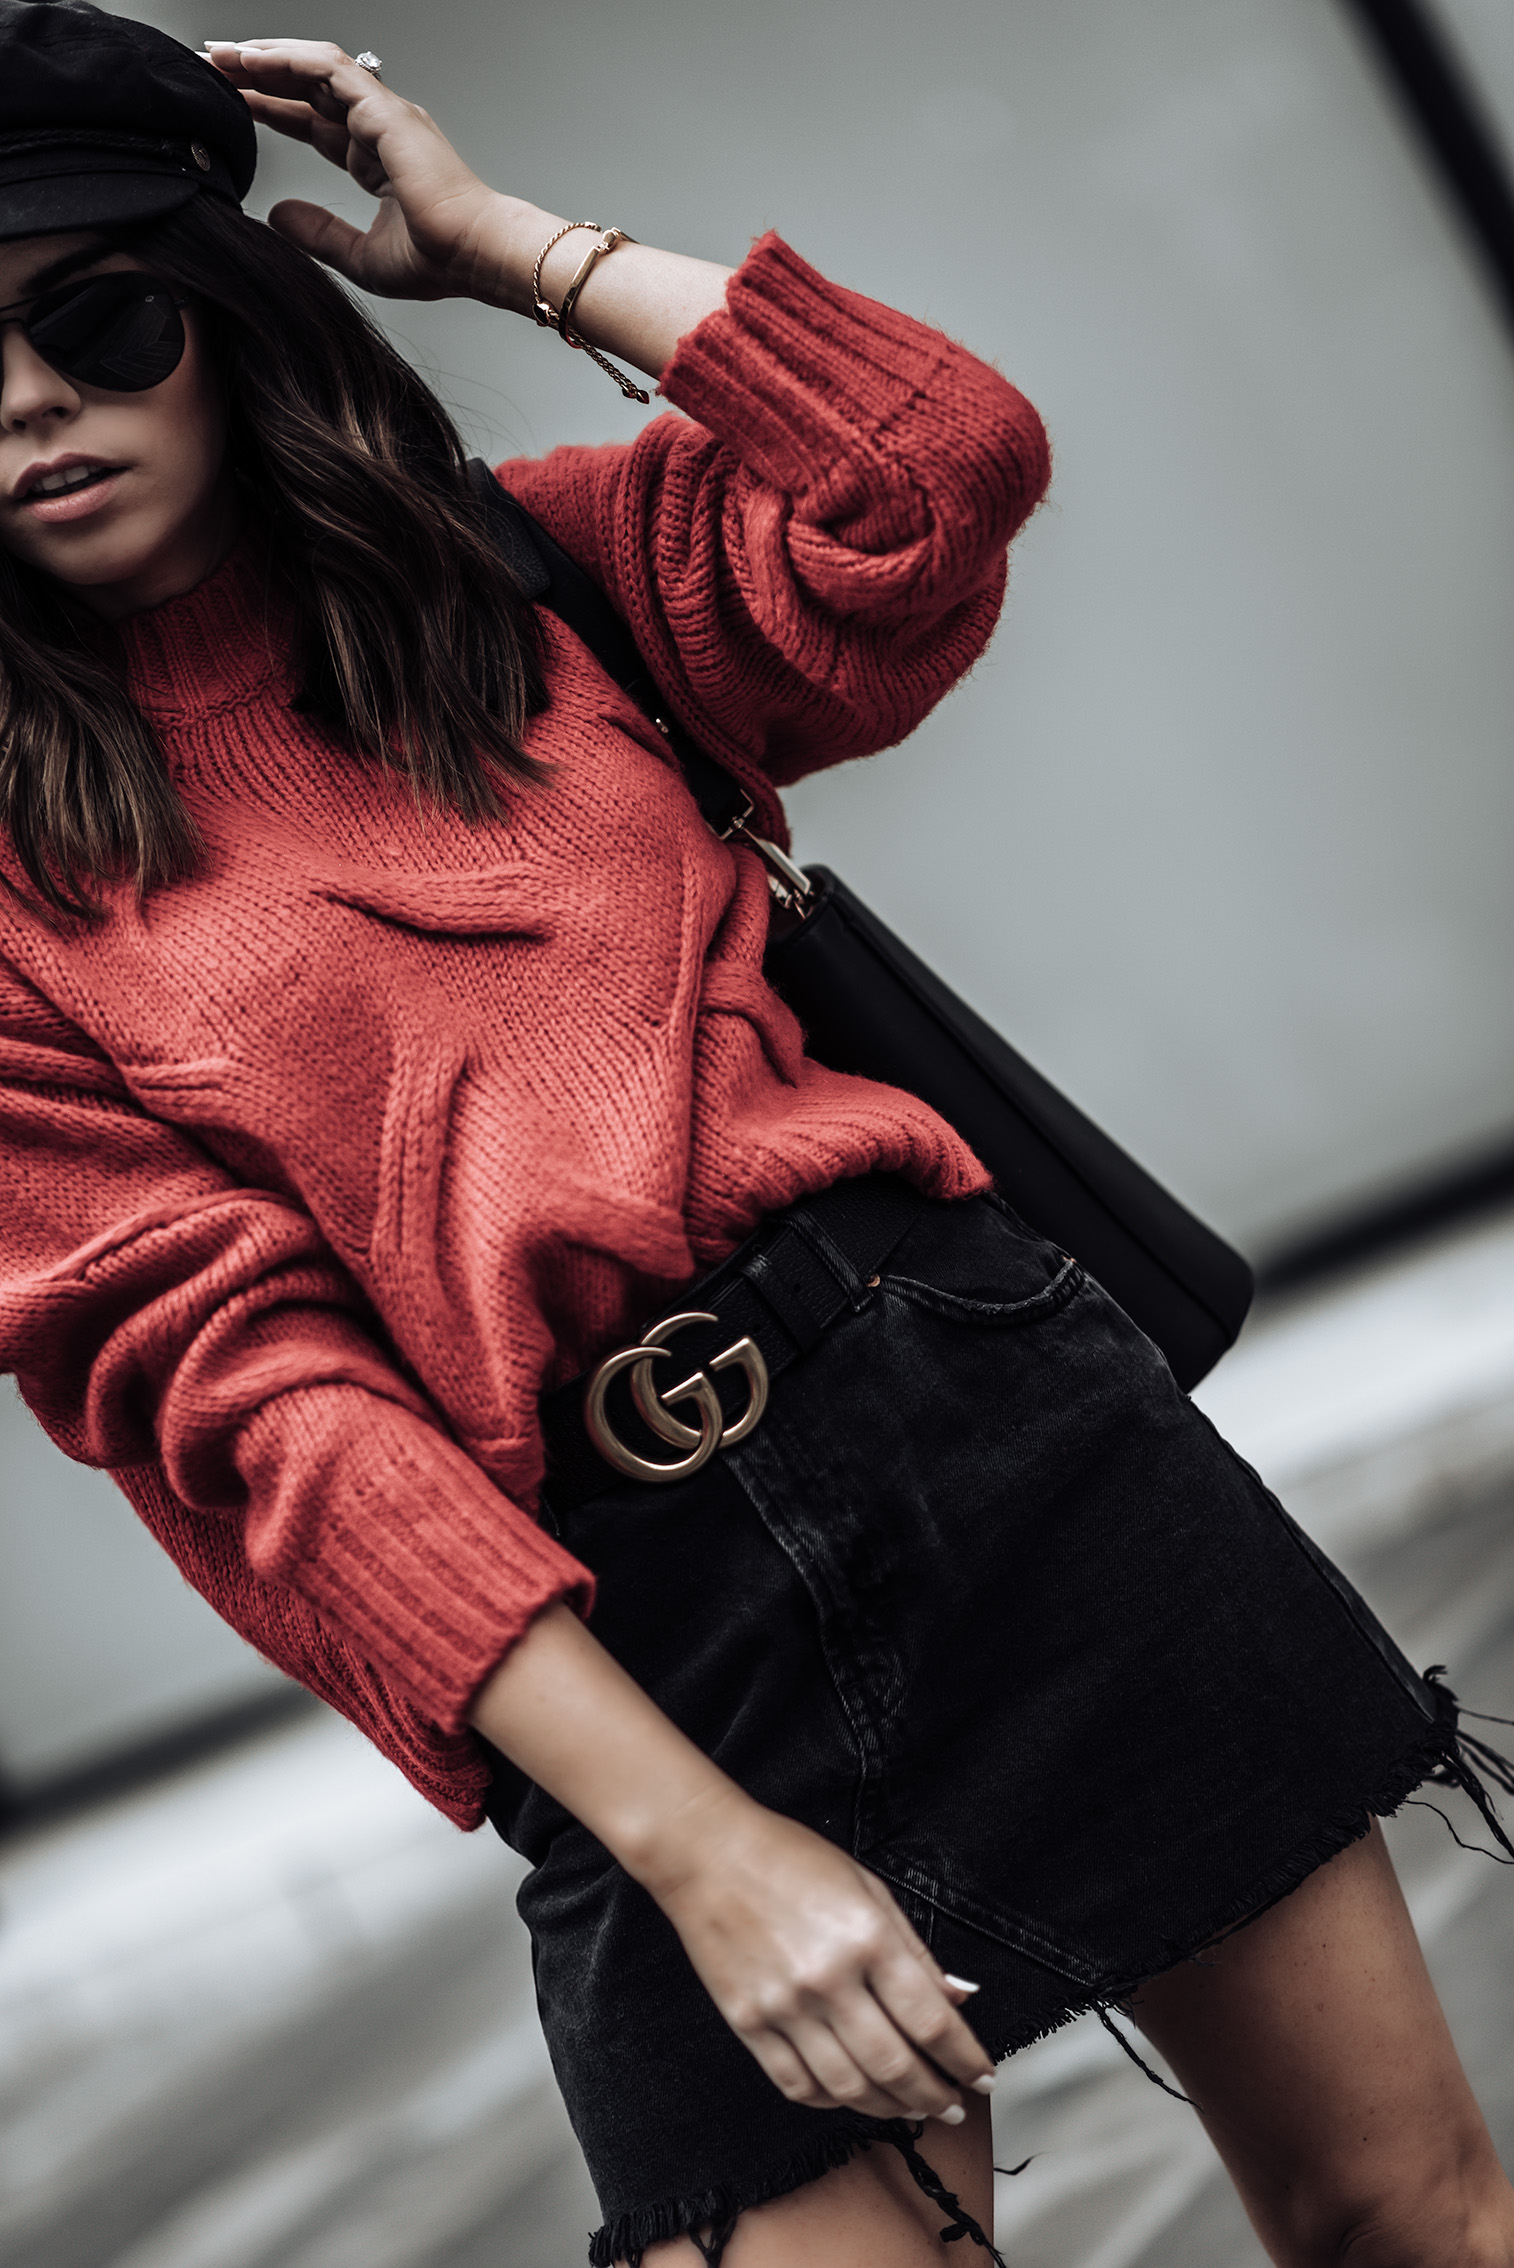 Red & Black | Red knit sweater (similar here and here) | Bucket bag (similar style here for only $25) | Black denim high waist mini skirt | Gucci Belt #gucci #streetstyle